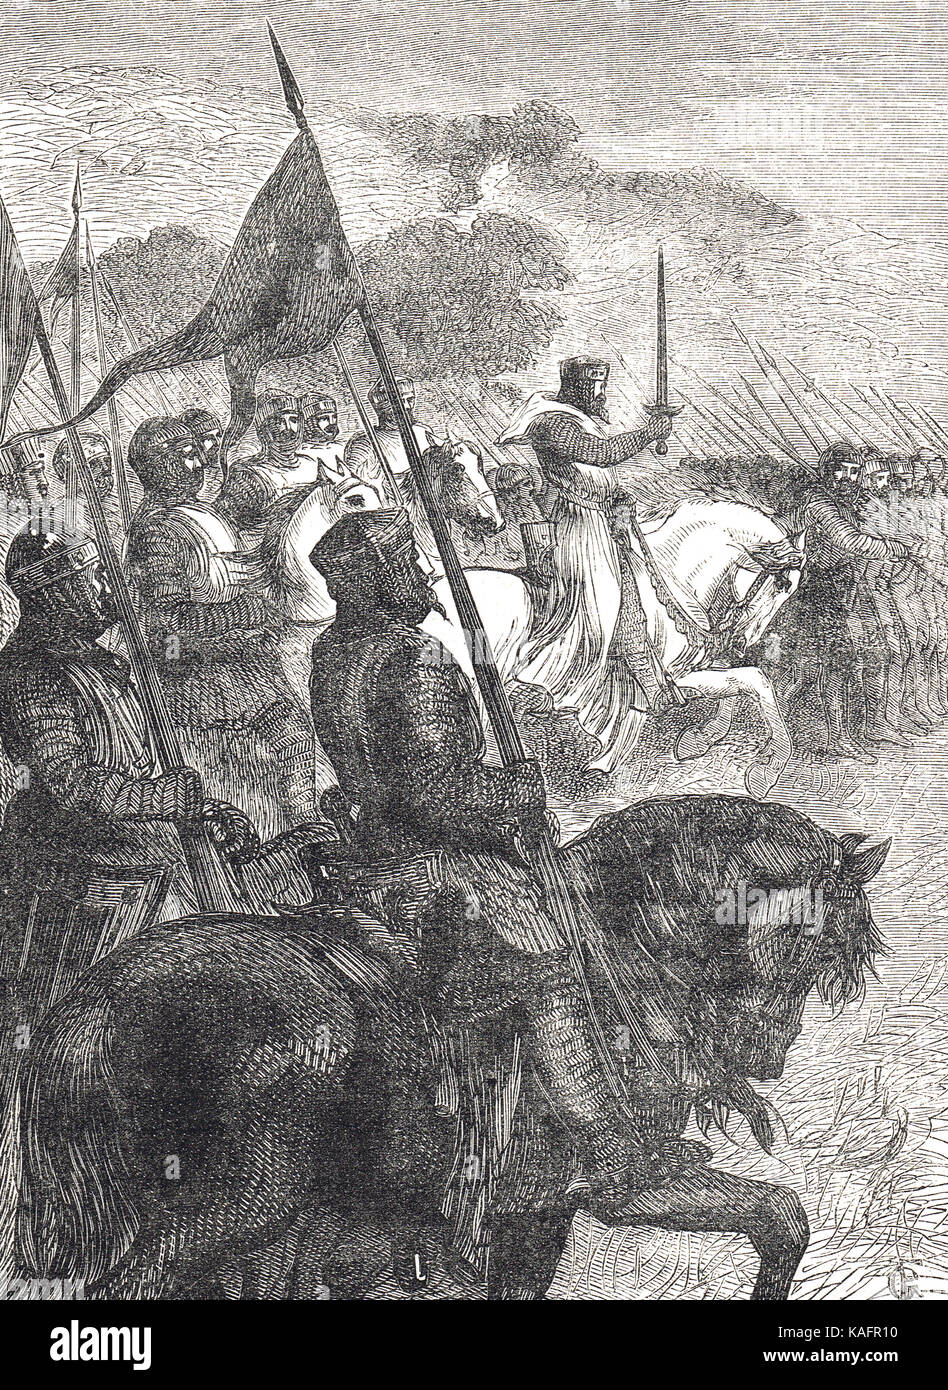 Thomas à Becket  at the head of seven hundred knights, Toulouse campaign of 1159 - Stock Image